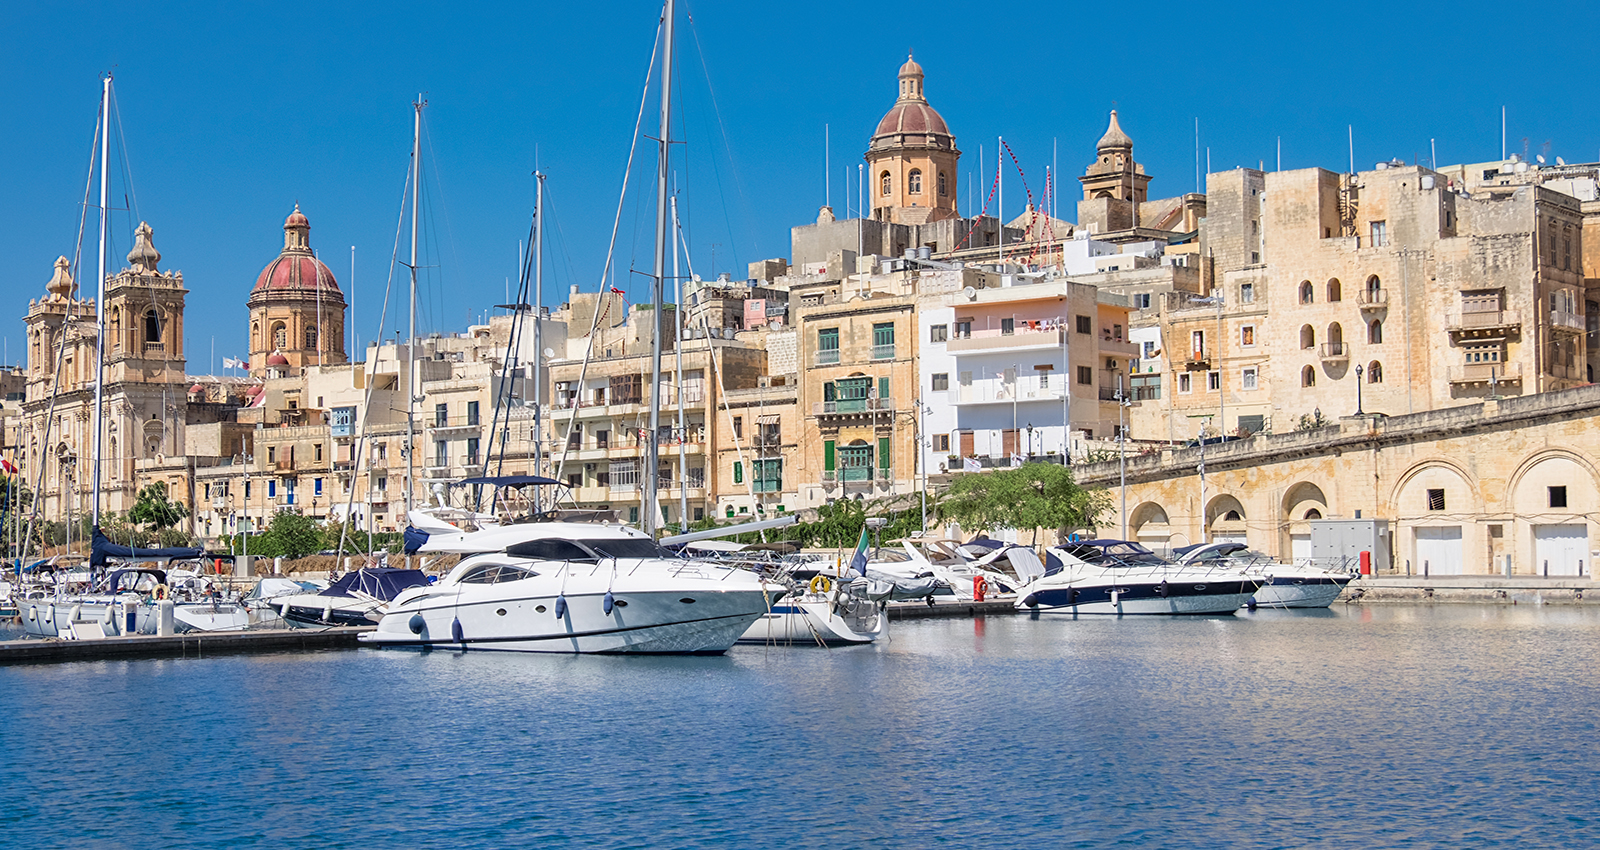 Having a Malta passport and dual citizenship benefits future generations with increased political and economic freedom